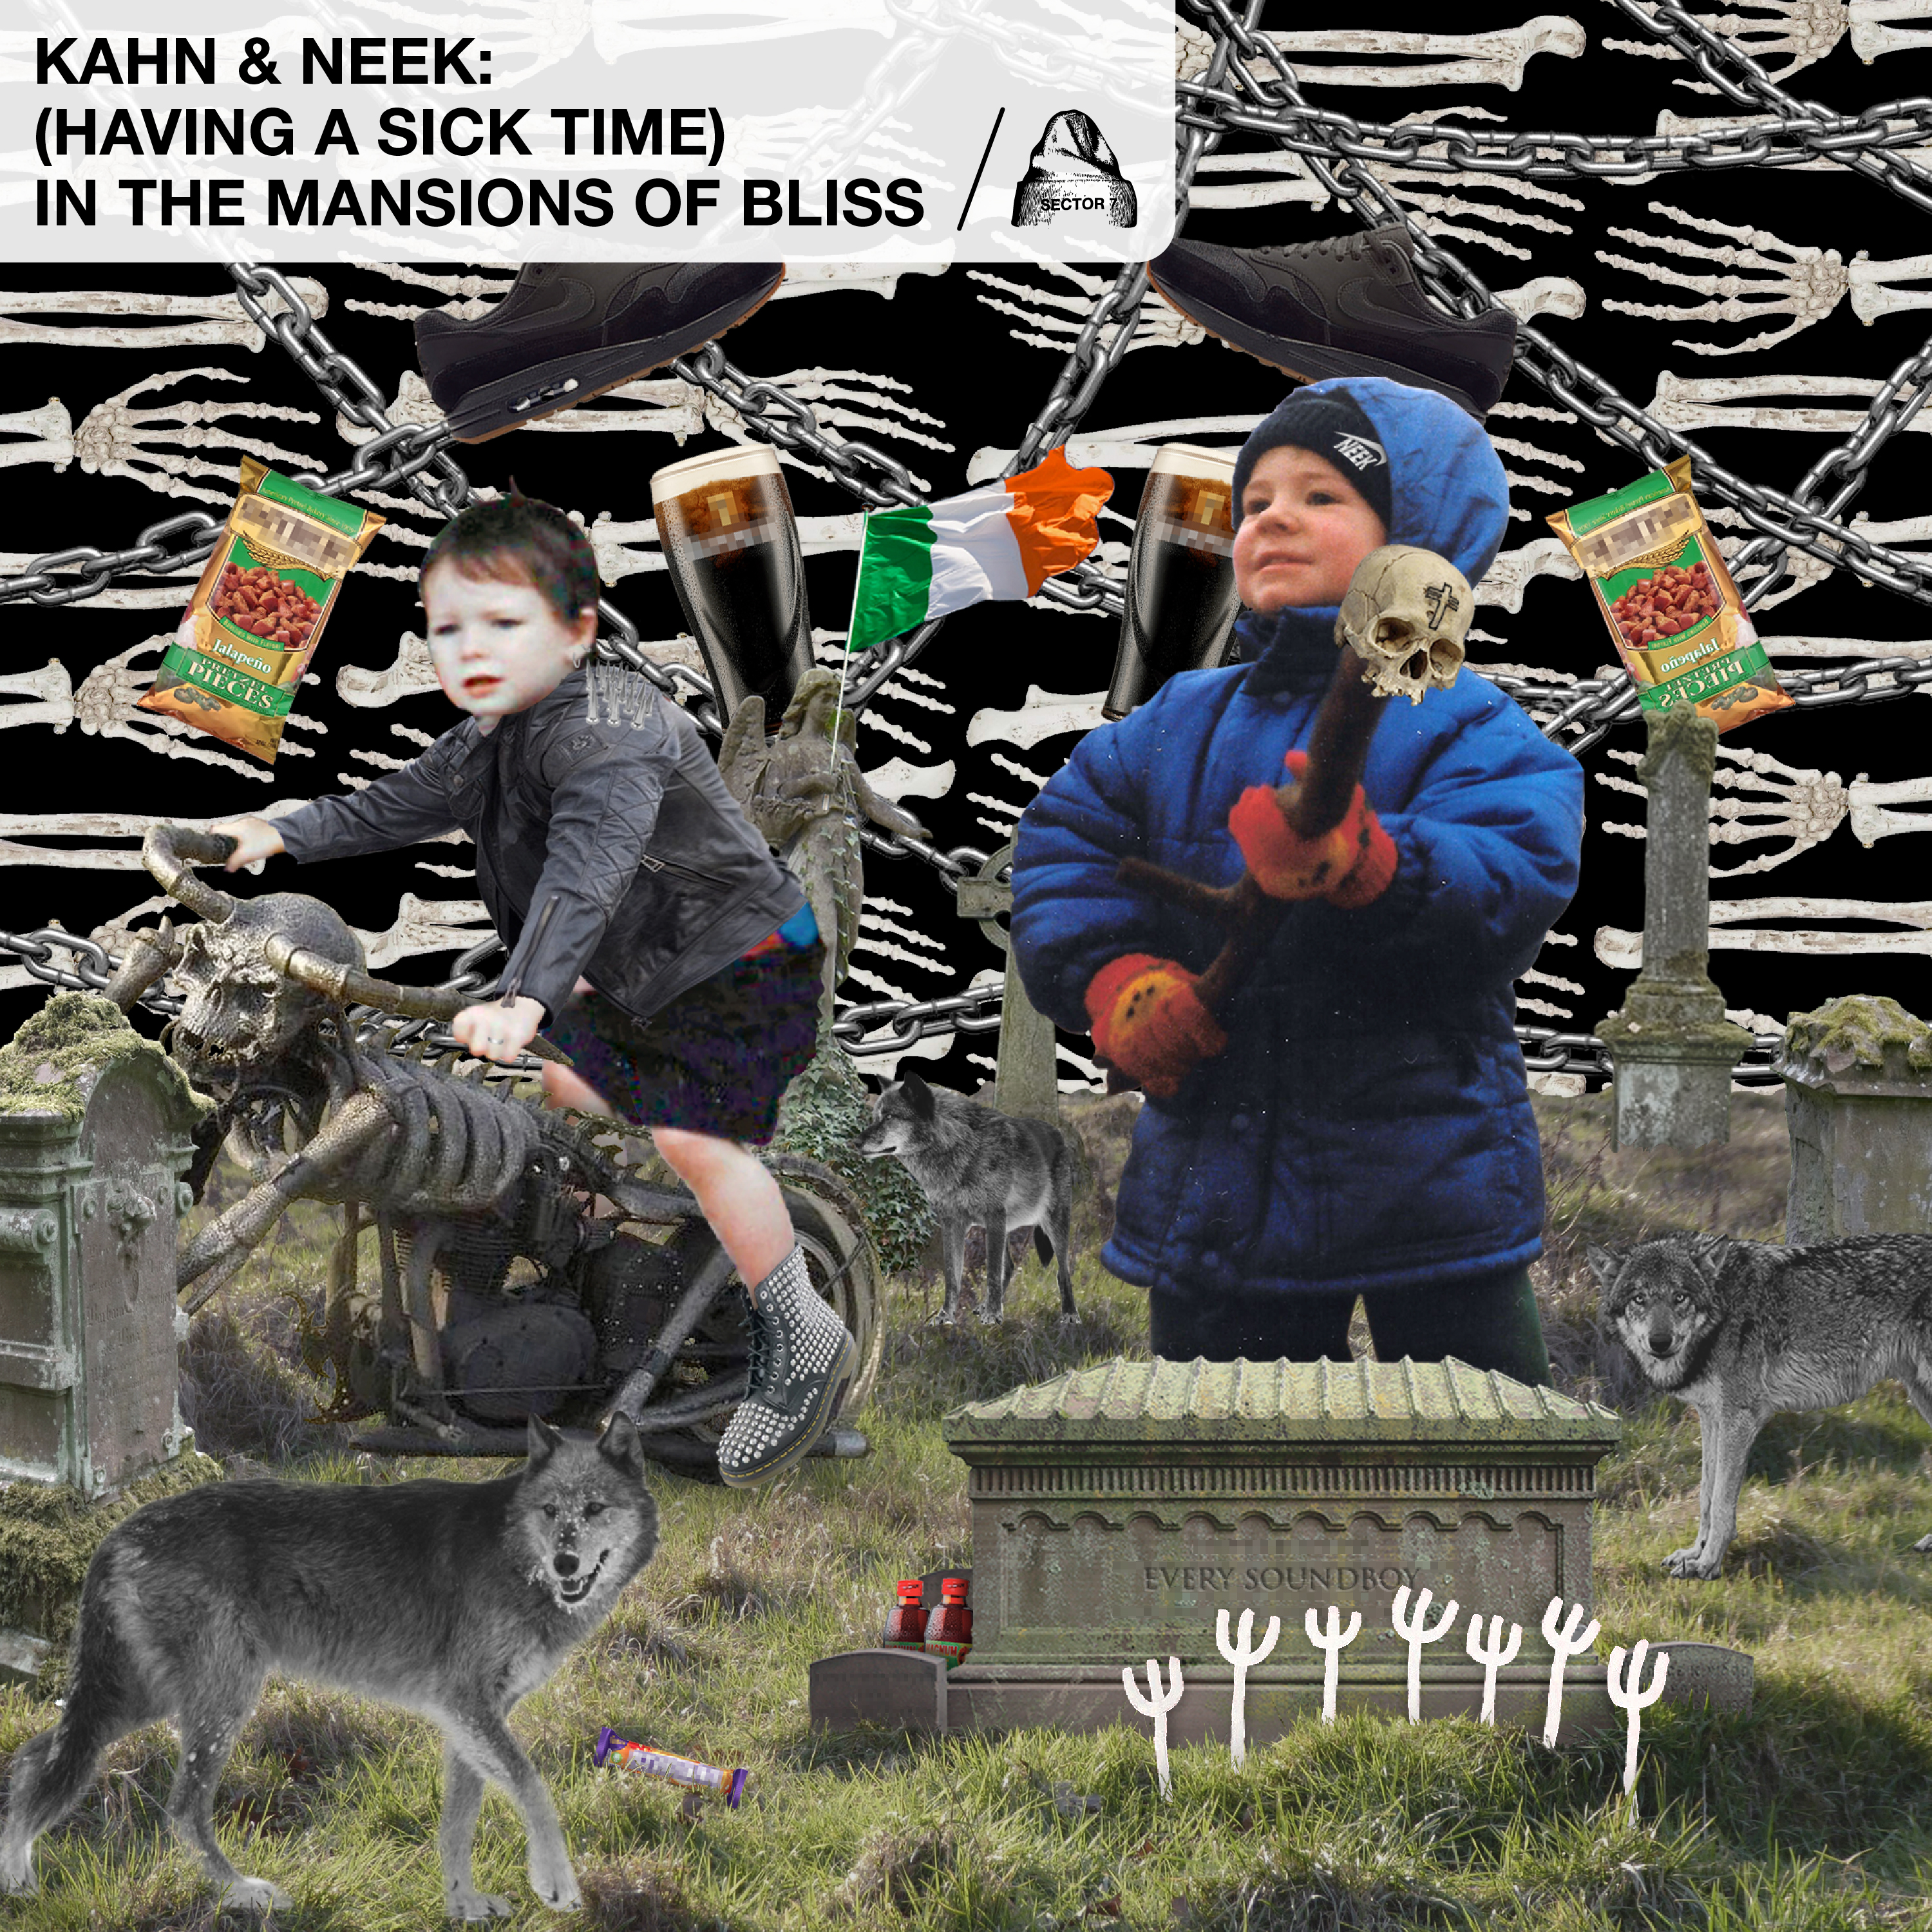 Kahn & Neek - (Having A Sick Time) In The Mansions Of Bliss